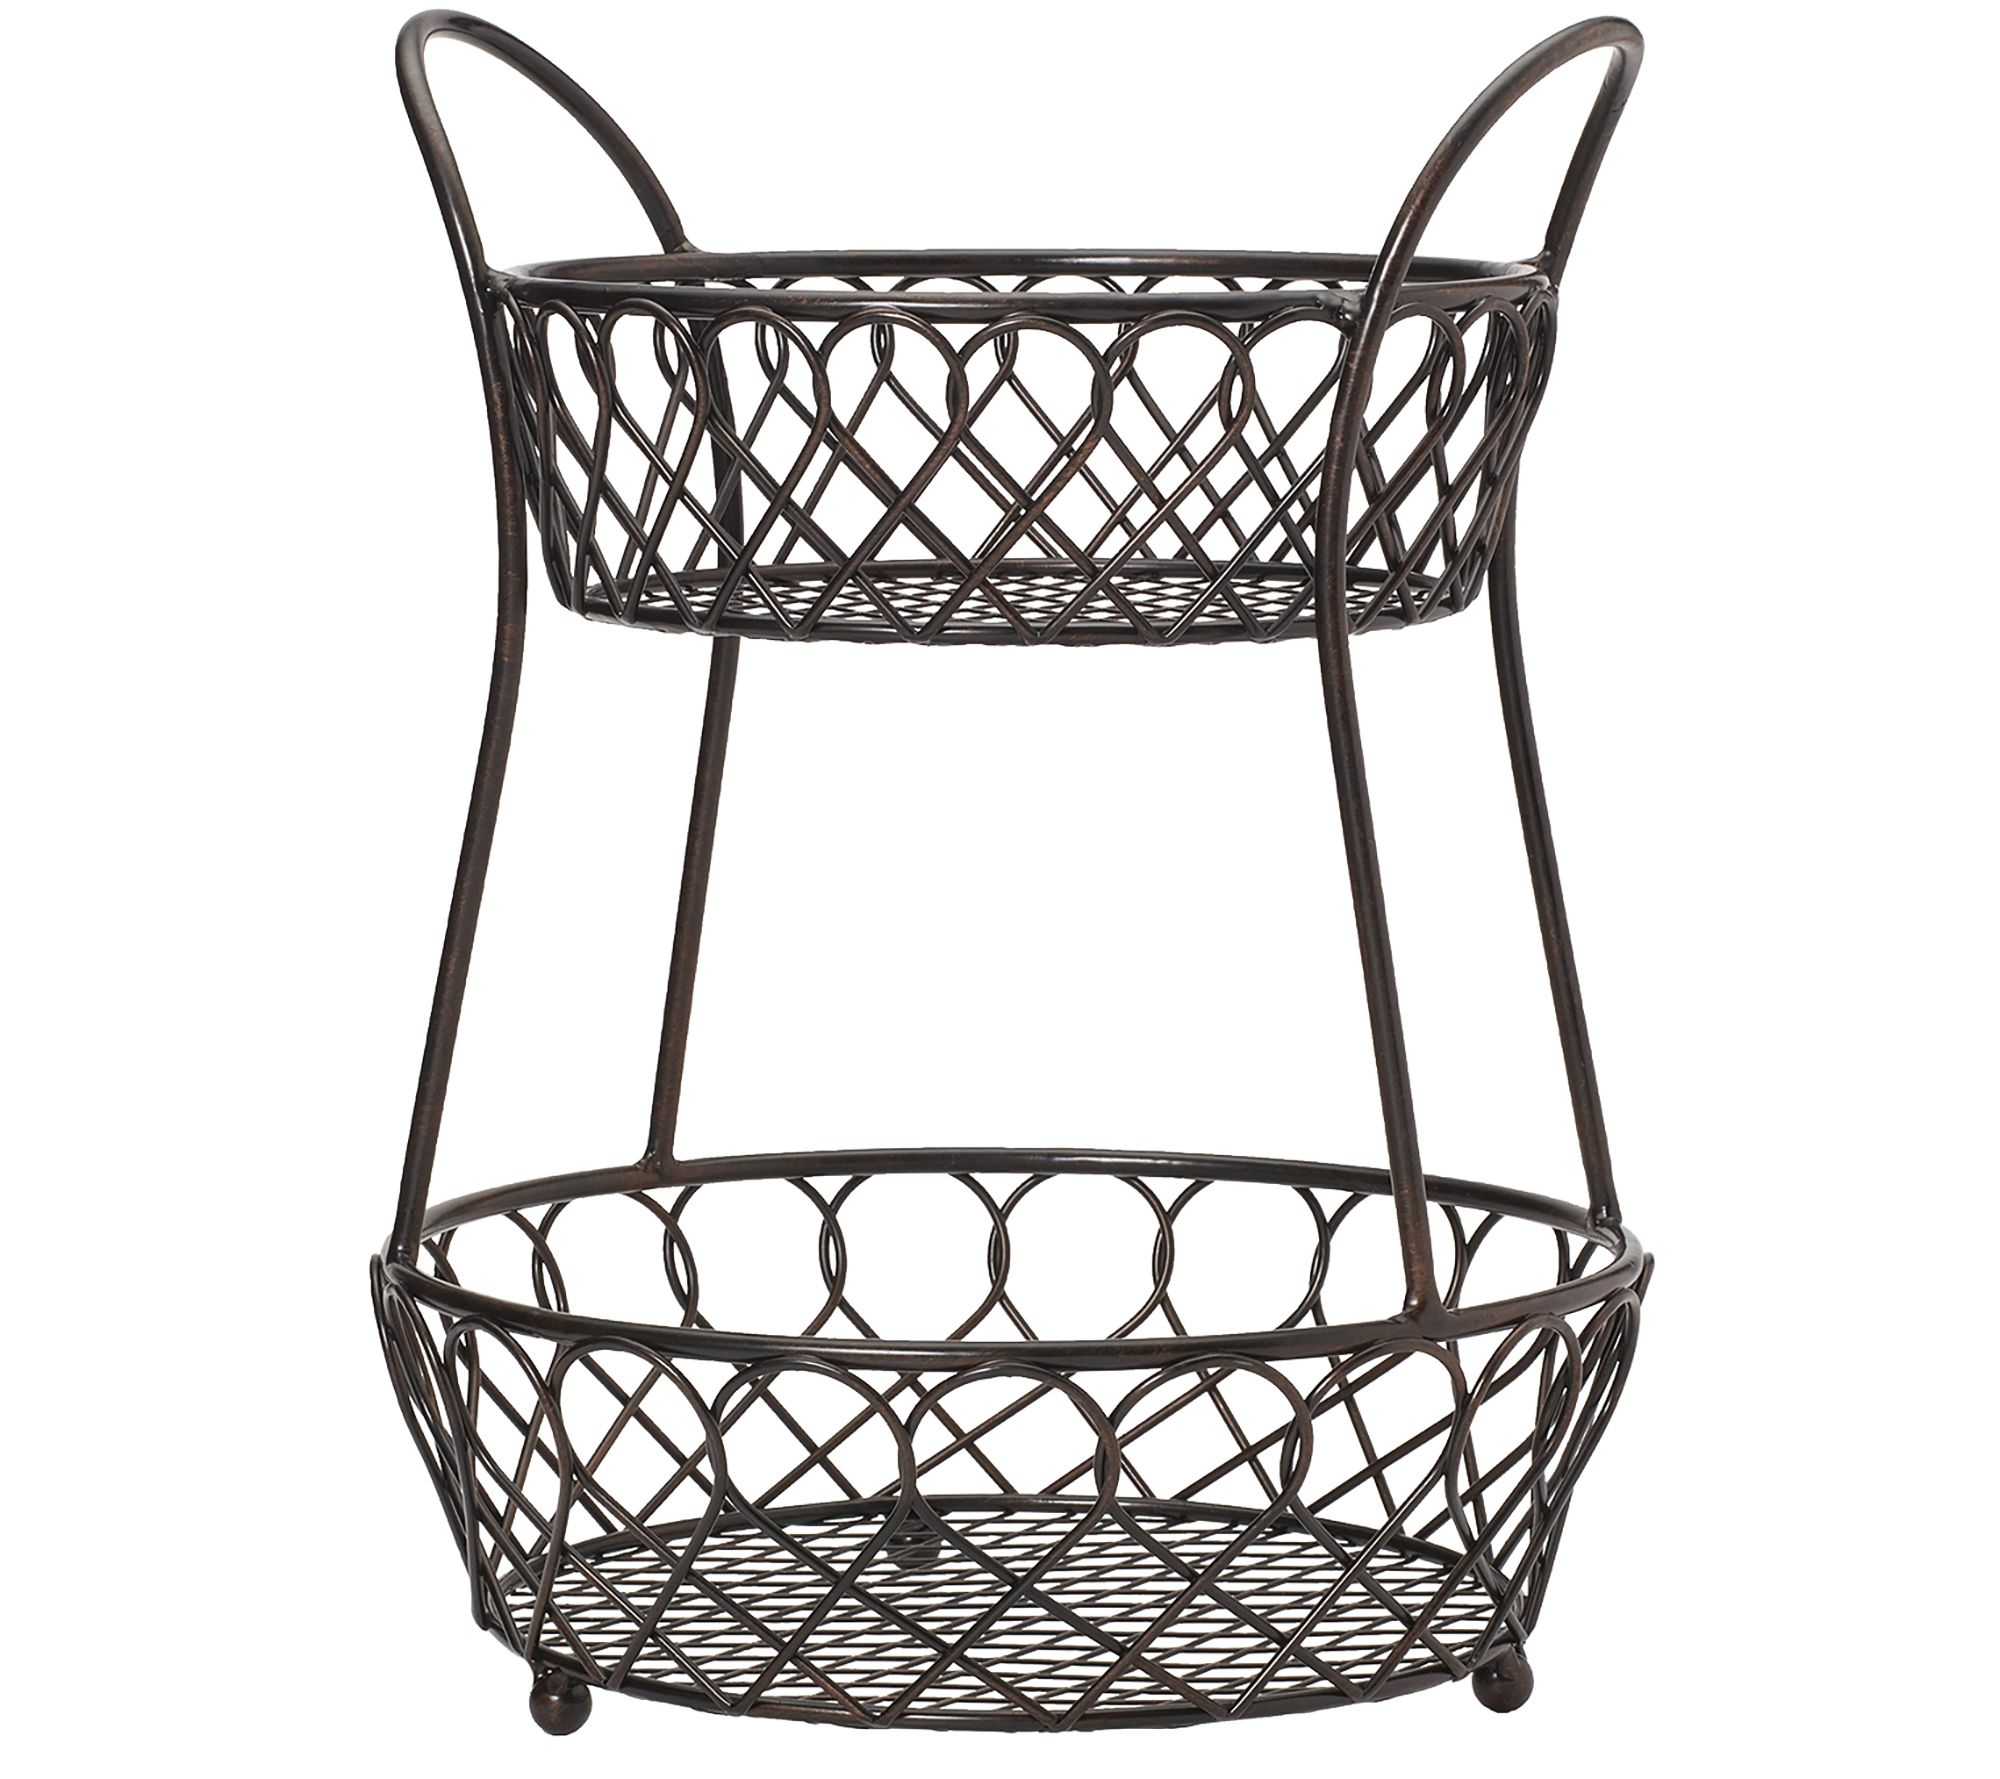 Gourmet Basics by Mikasa Loop & Lattice 2-TierBasket - Page 1 — QVC.com